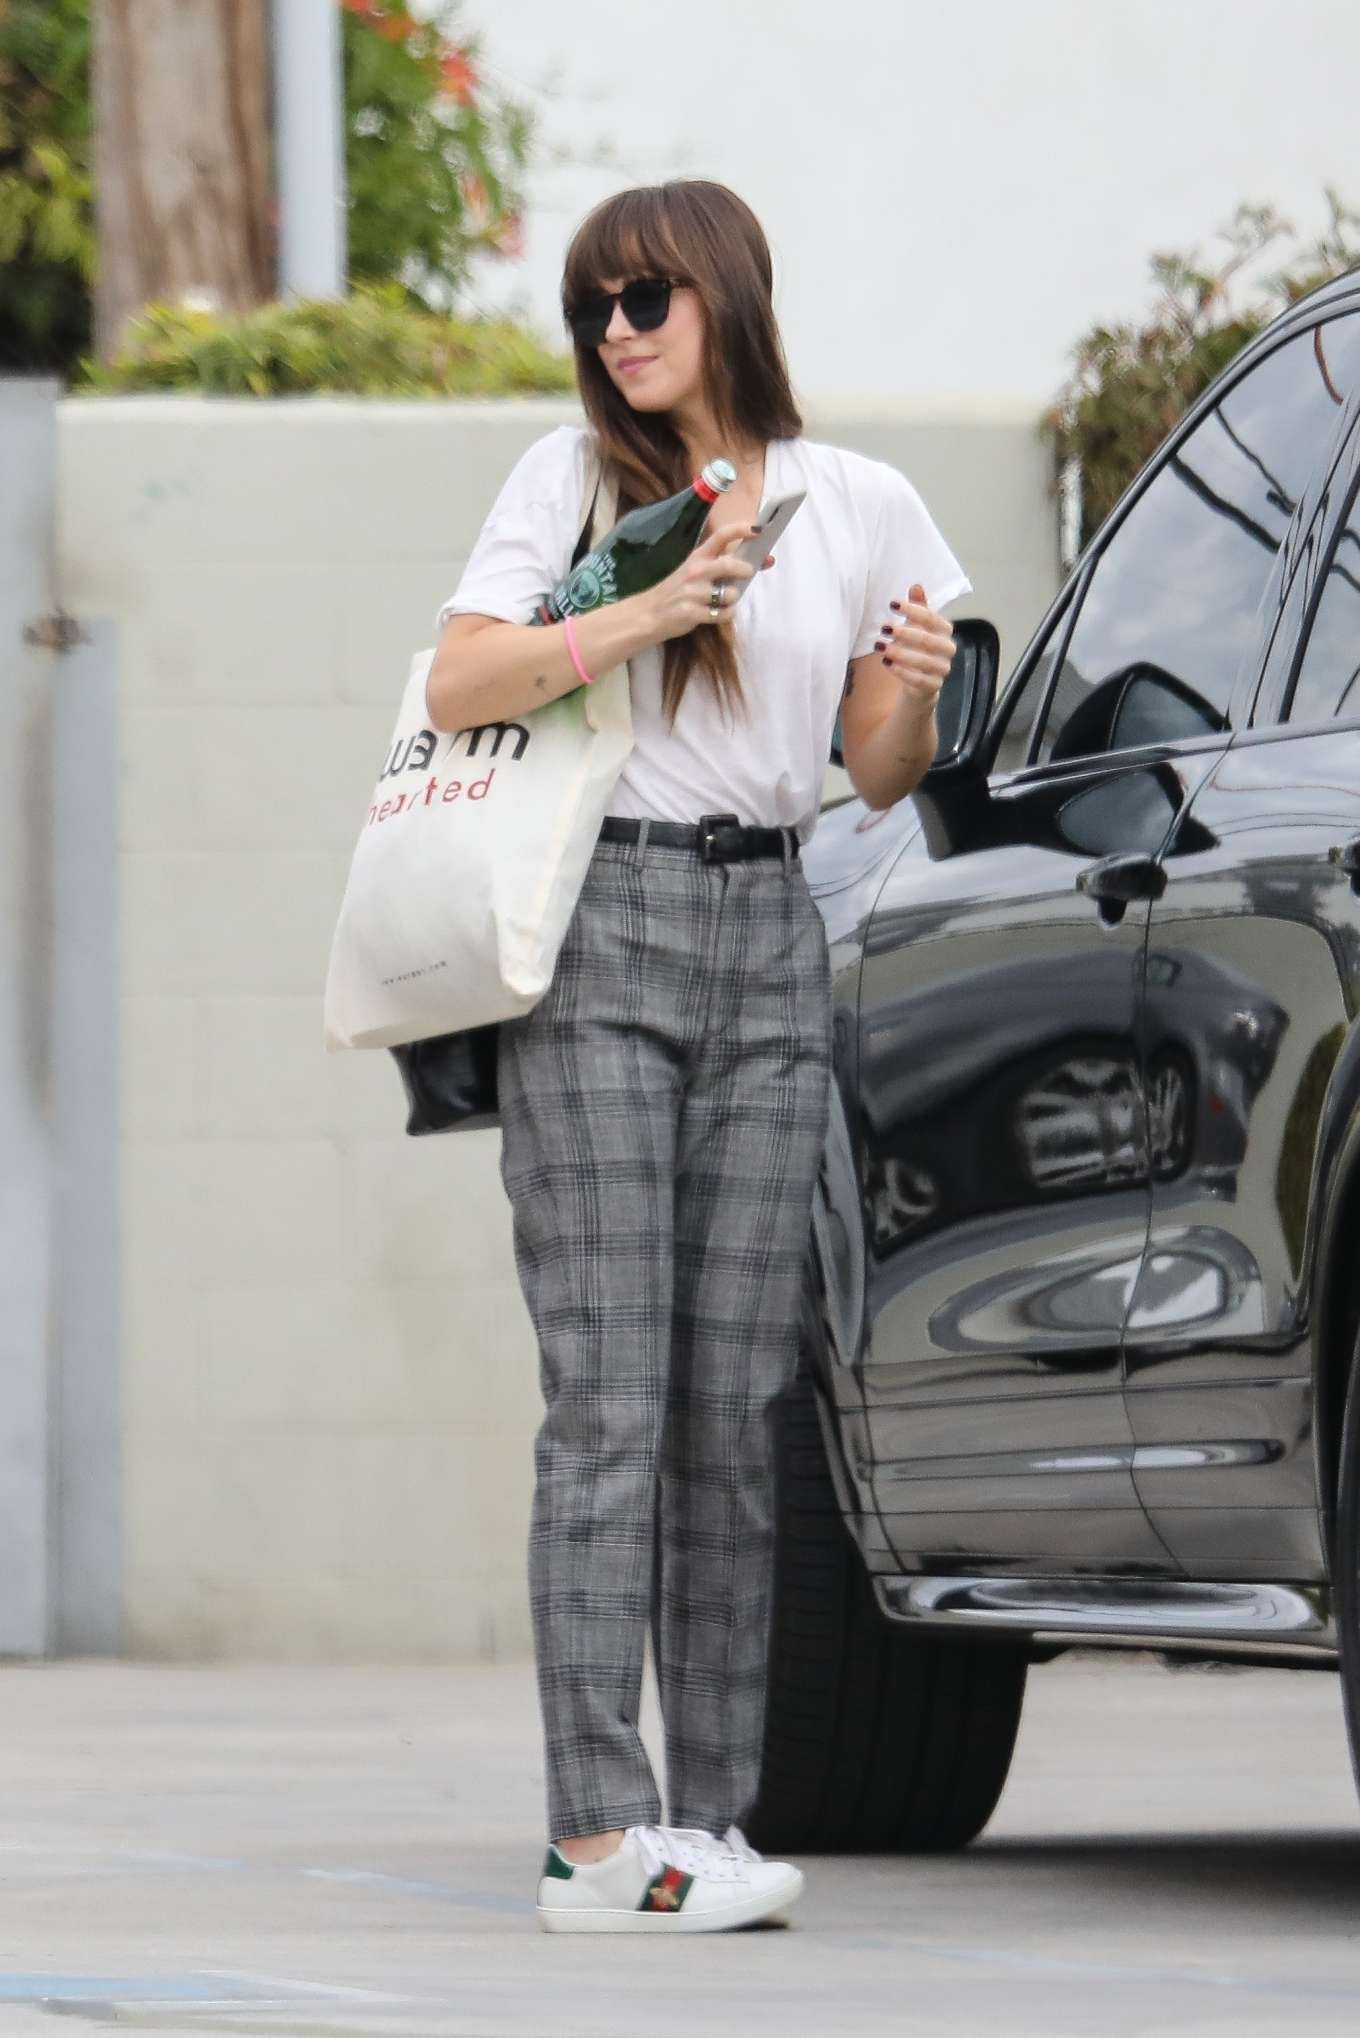 Dakota Johnson Grey Sweatshirt Street Style Autumn Winter 2020 on SASSY DAILY